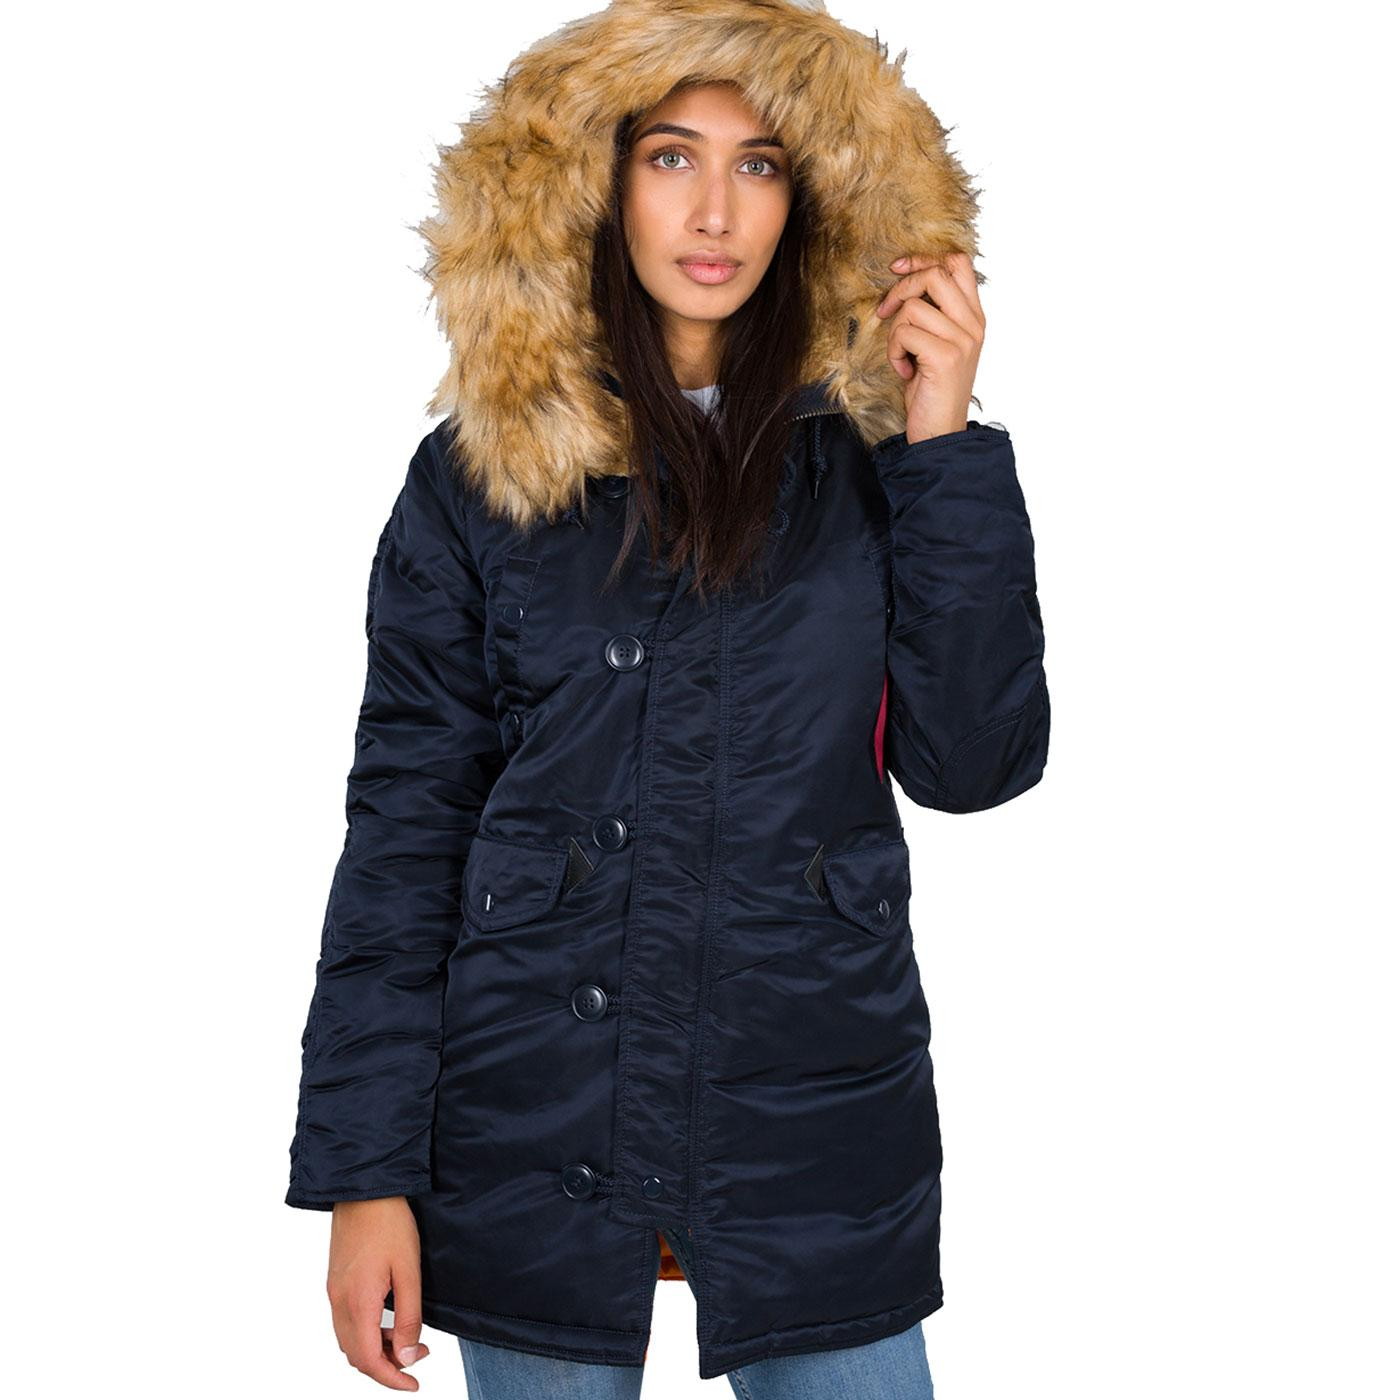 N3B VF ALPHA INDUSTRIES Women's Snorkel Parka RB